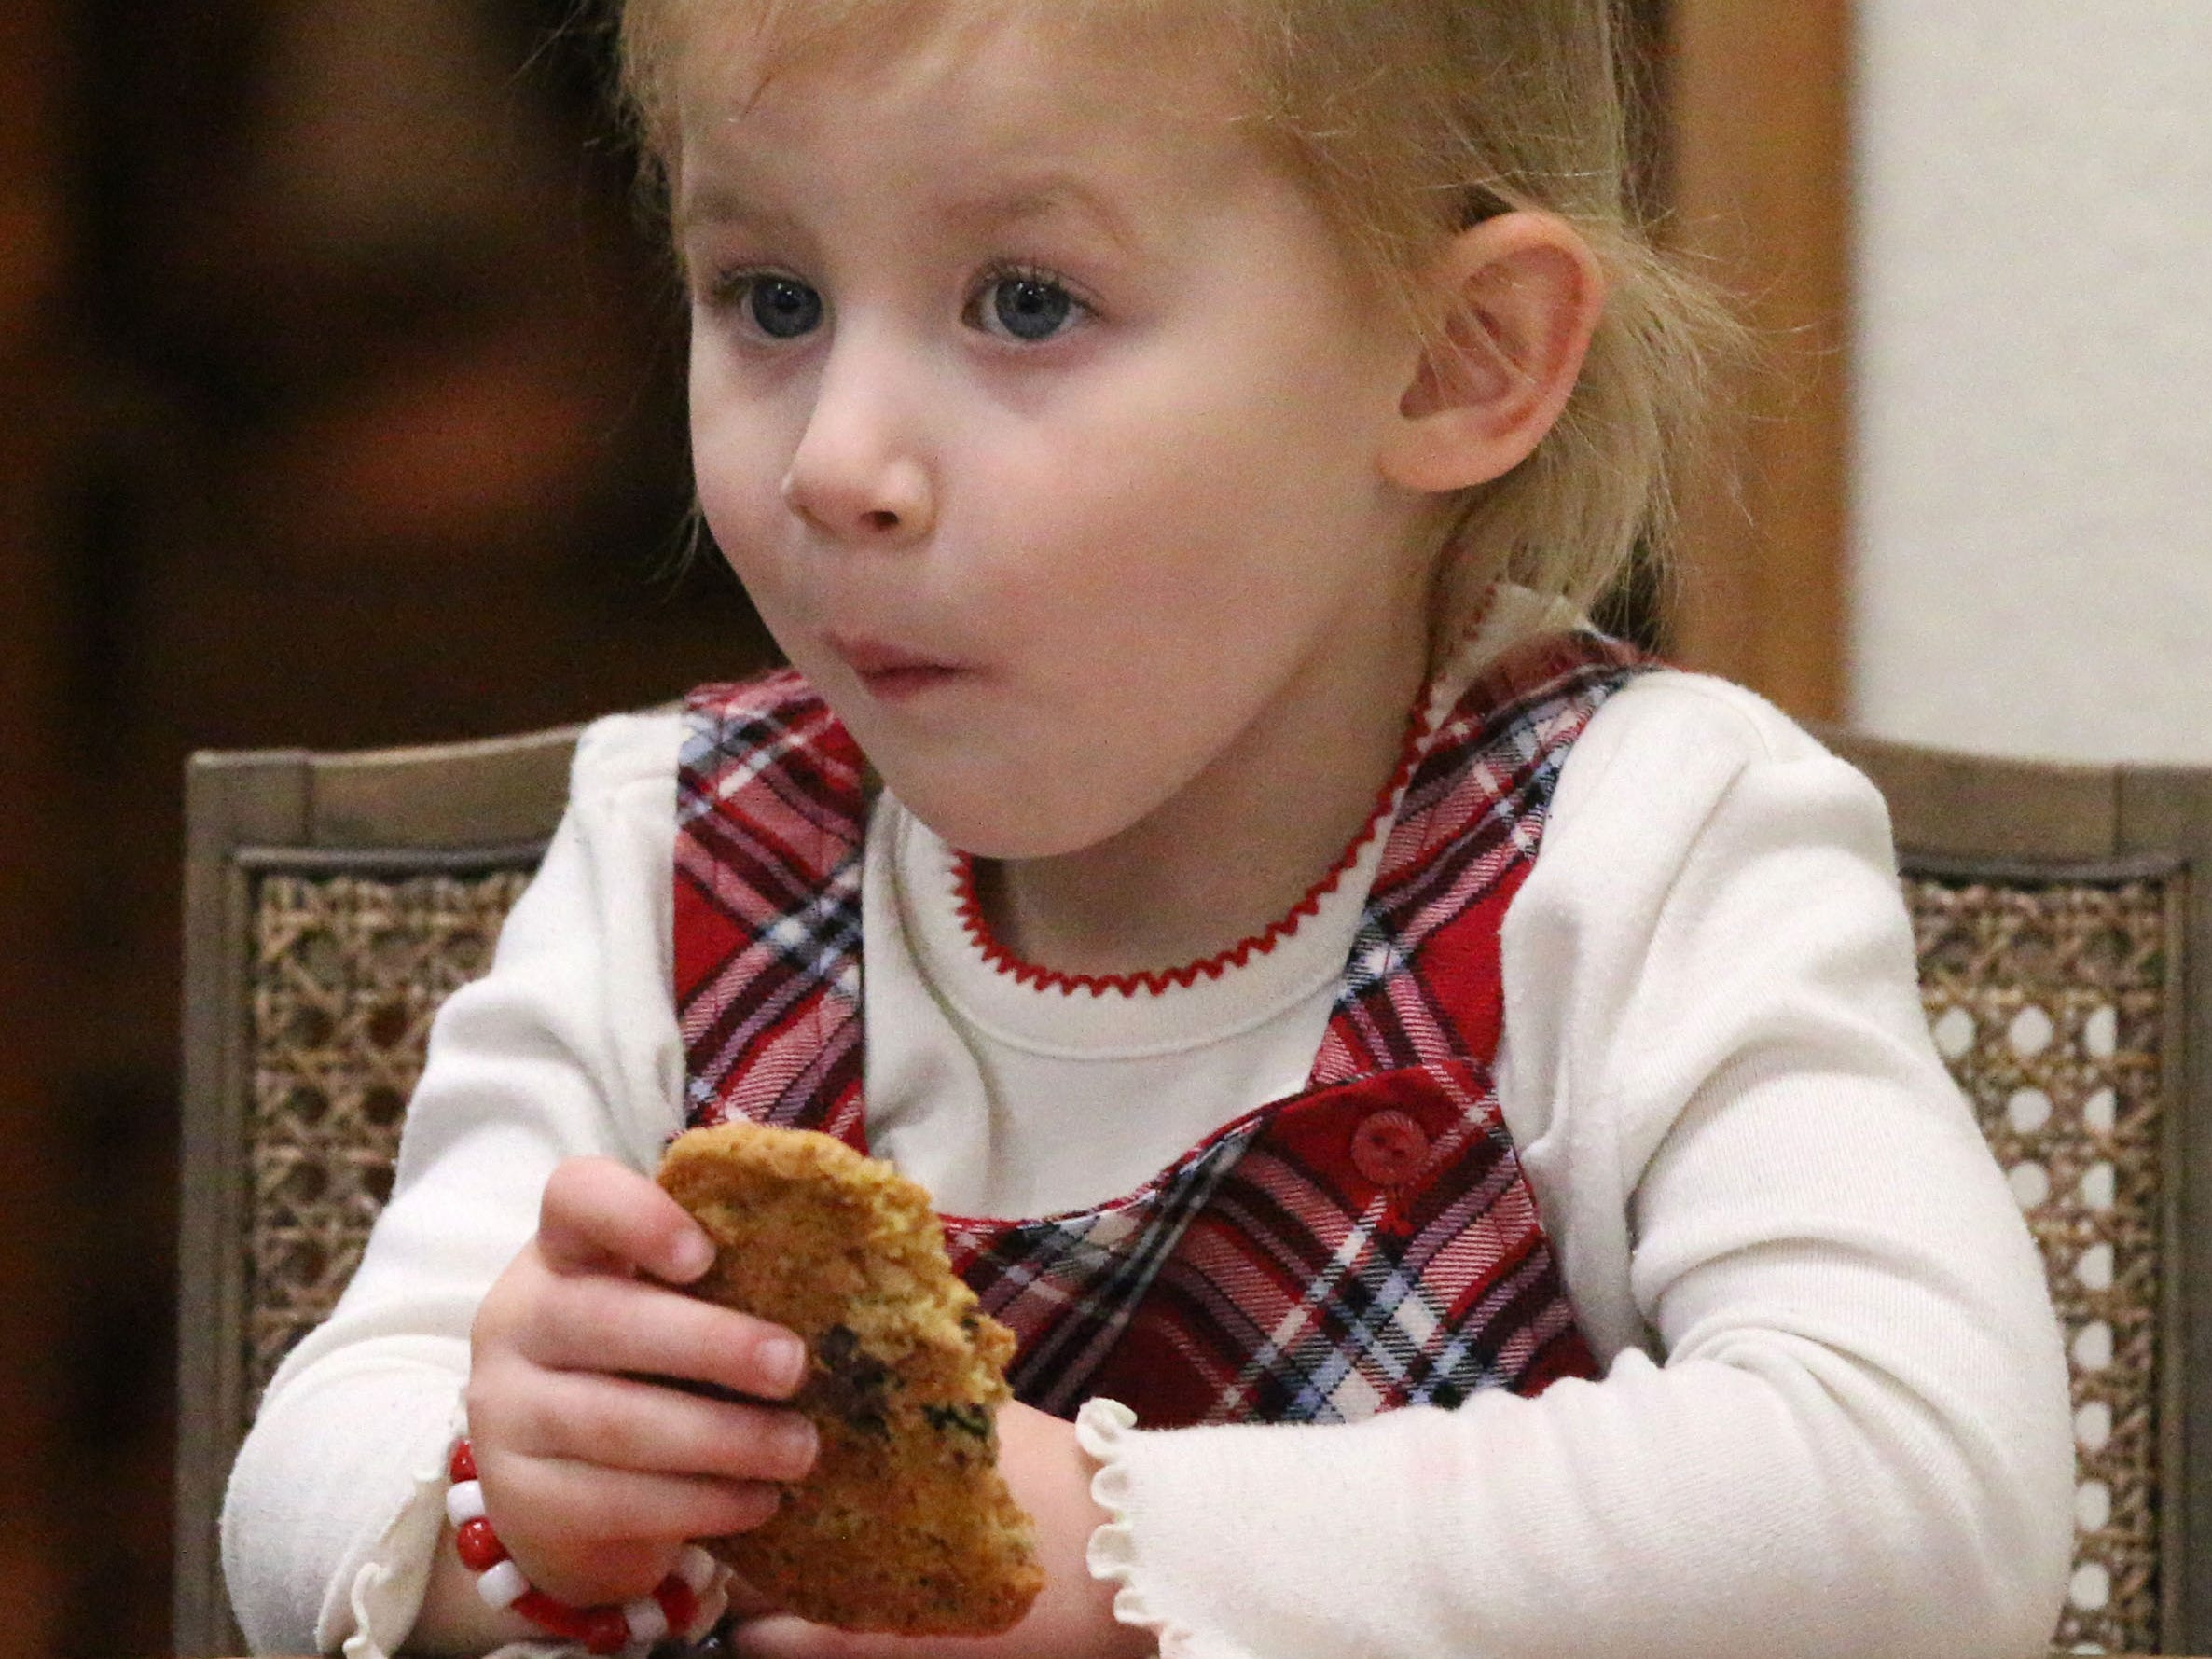 Kadence Baumhardt, 3, of Howards Grove, munches on a cookie during Cookies with Santa at Zimmer Westview Funeral and Cremation Care Center Saturday, December 1, 2018, in Howards Grove, Wis.  The firm also plans to have Santa at Ballhorn Chapels on December 8, 2018.